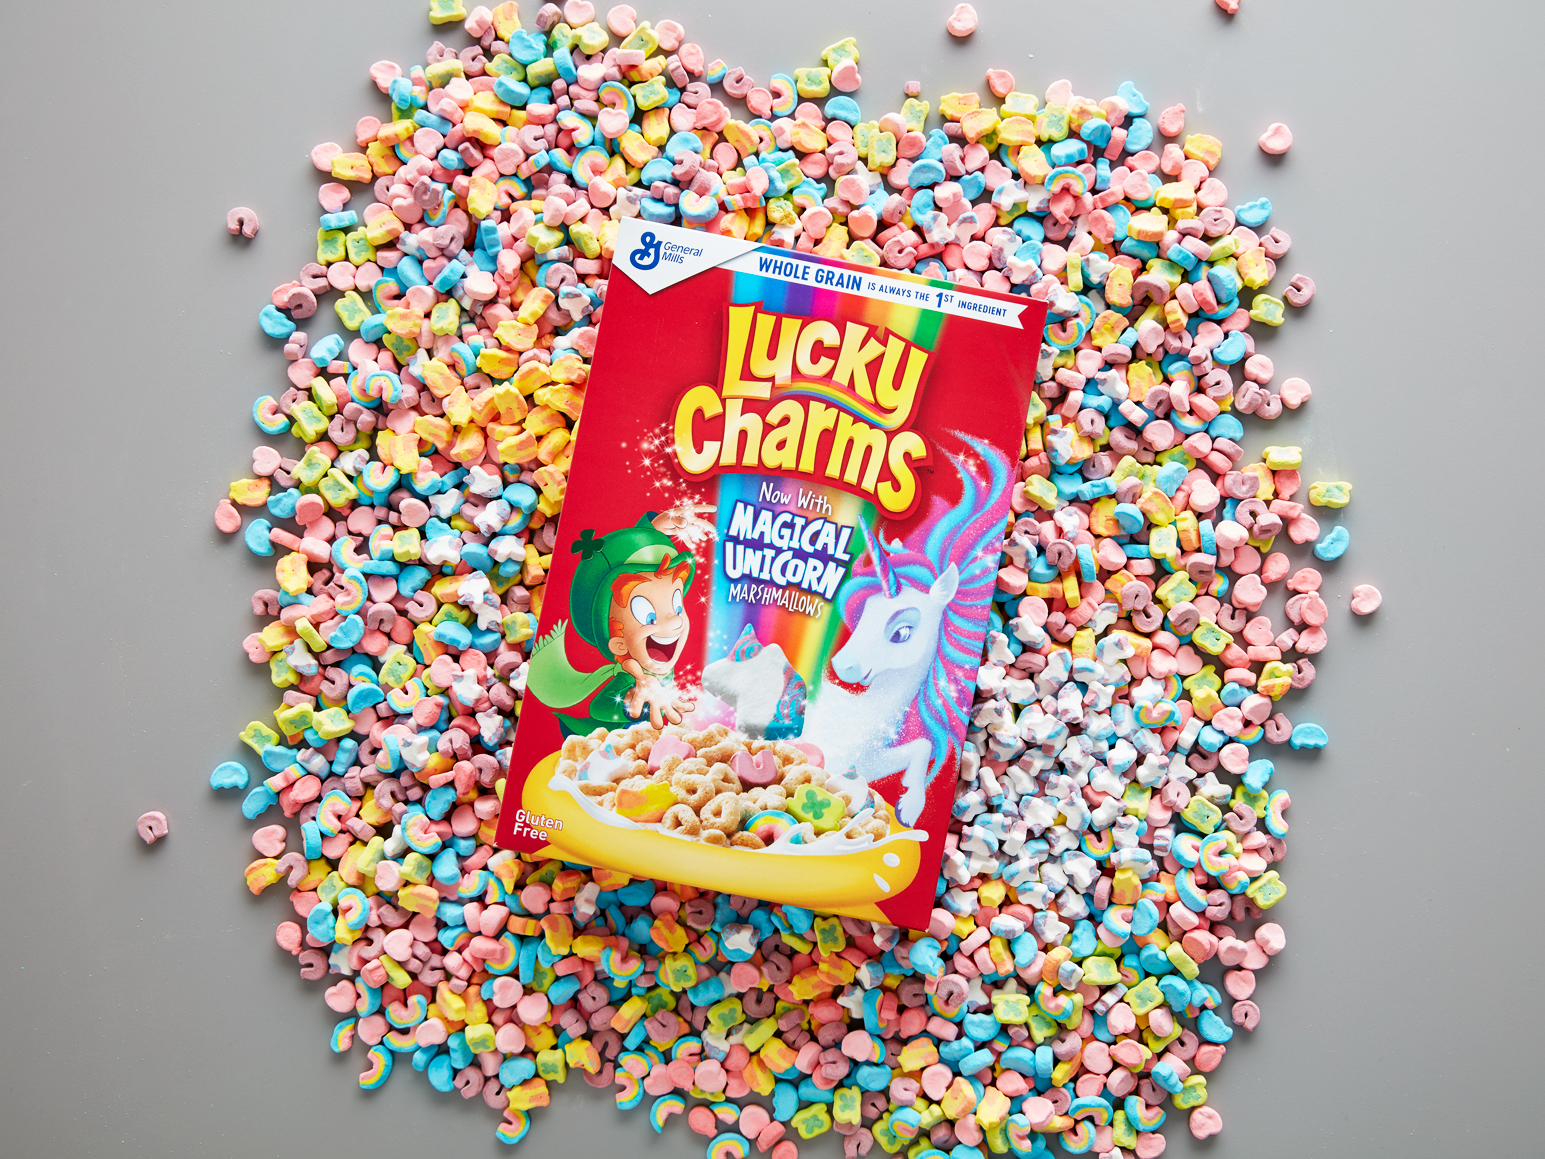 Lucky Charms Upgrades To Magical Unicorn Marshmallows